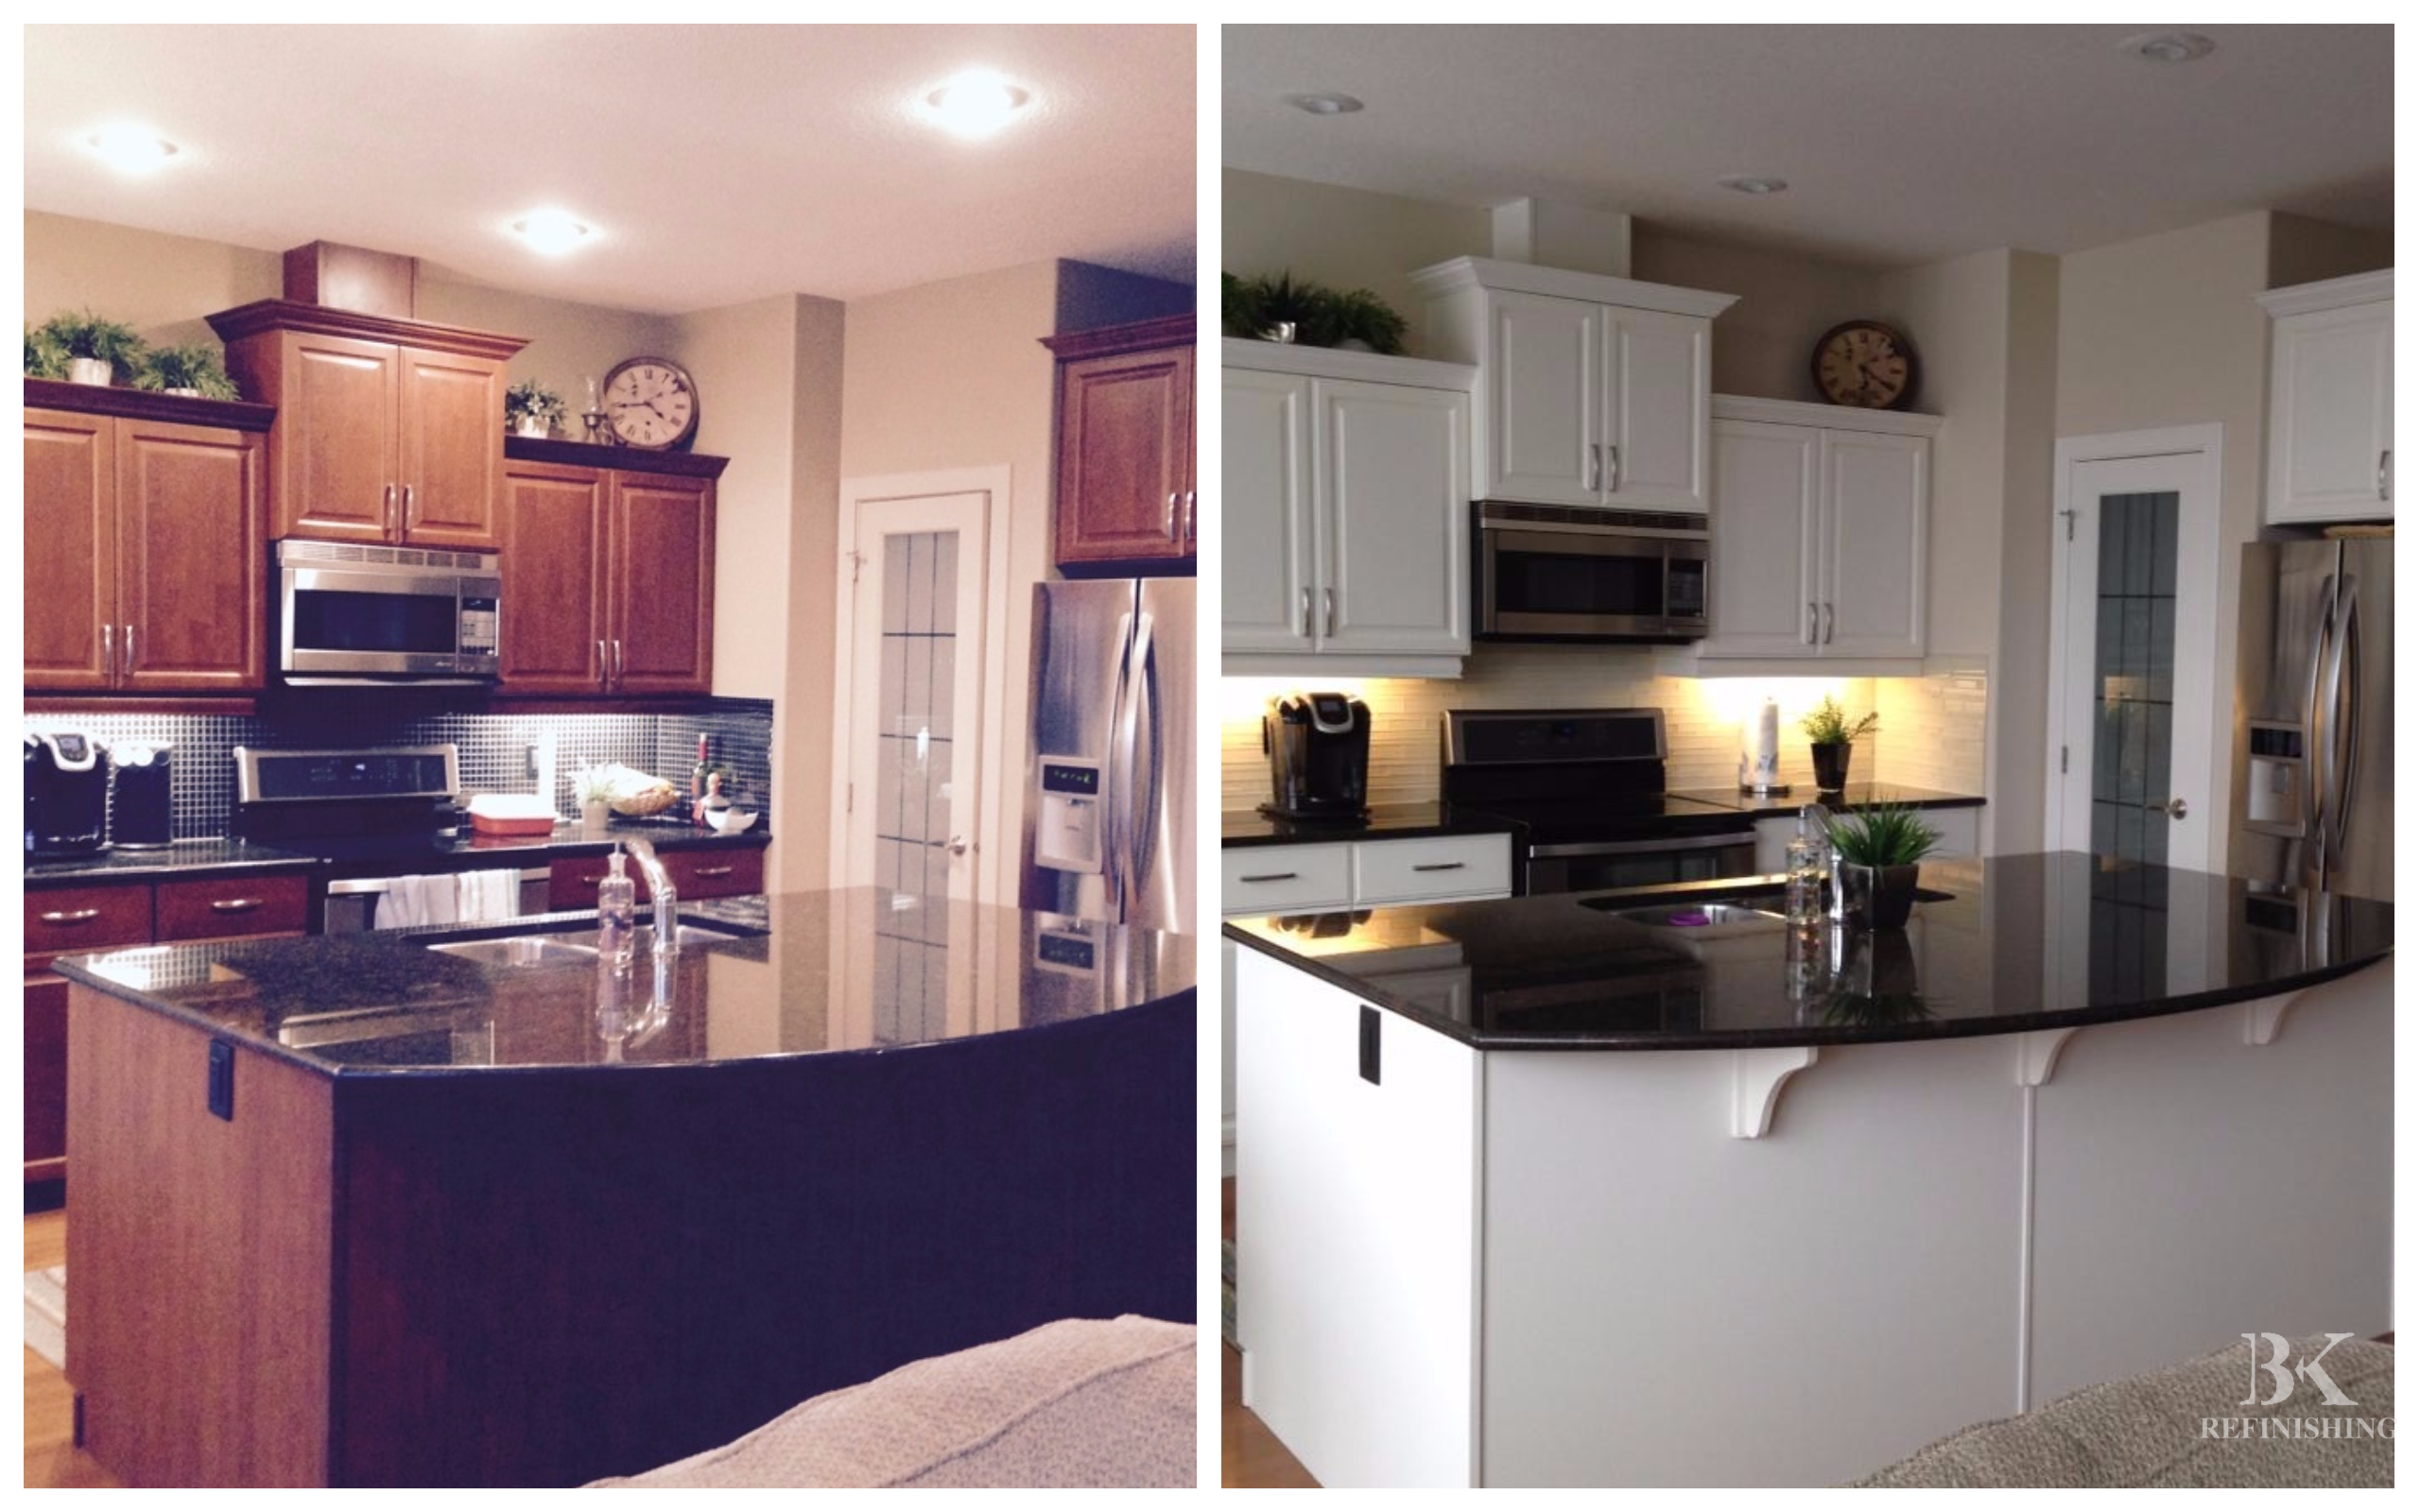 Best Kitchen Refinishing